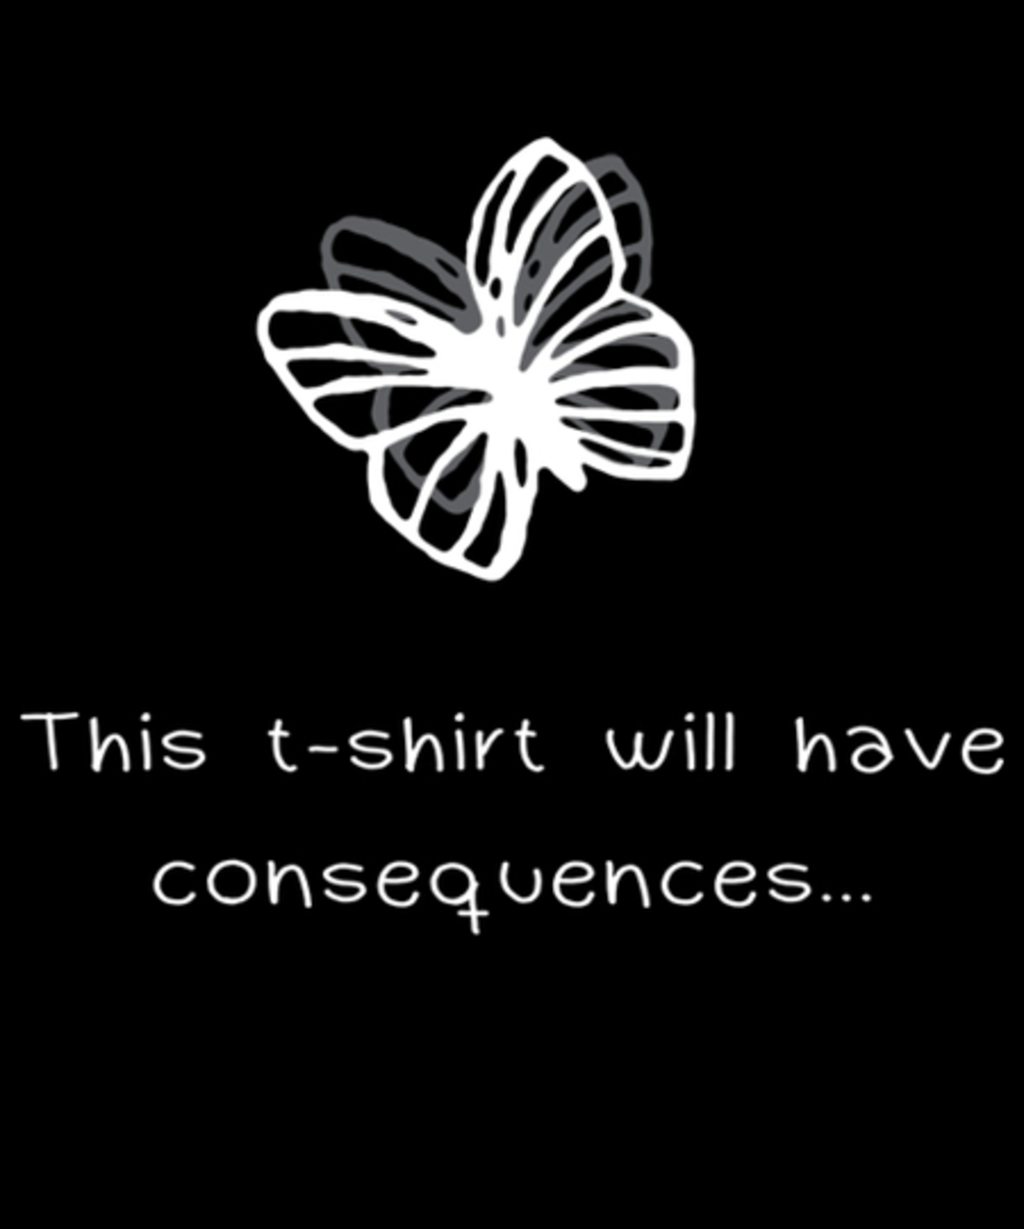 Qwertee: Consequences